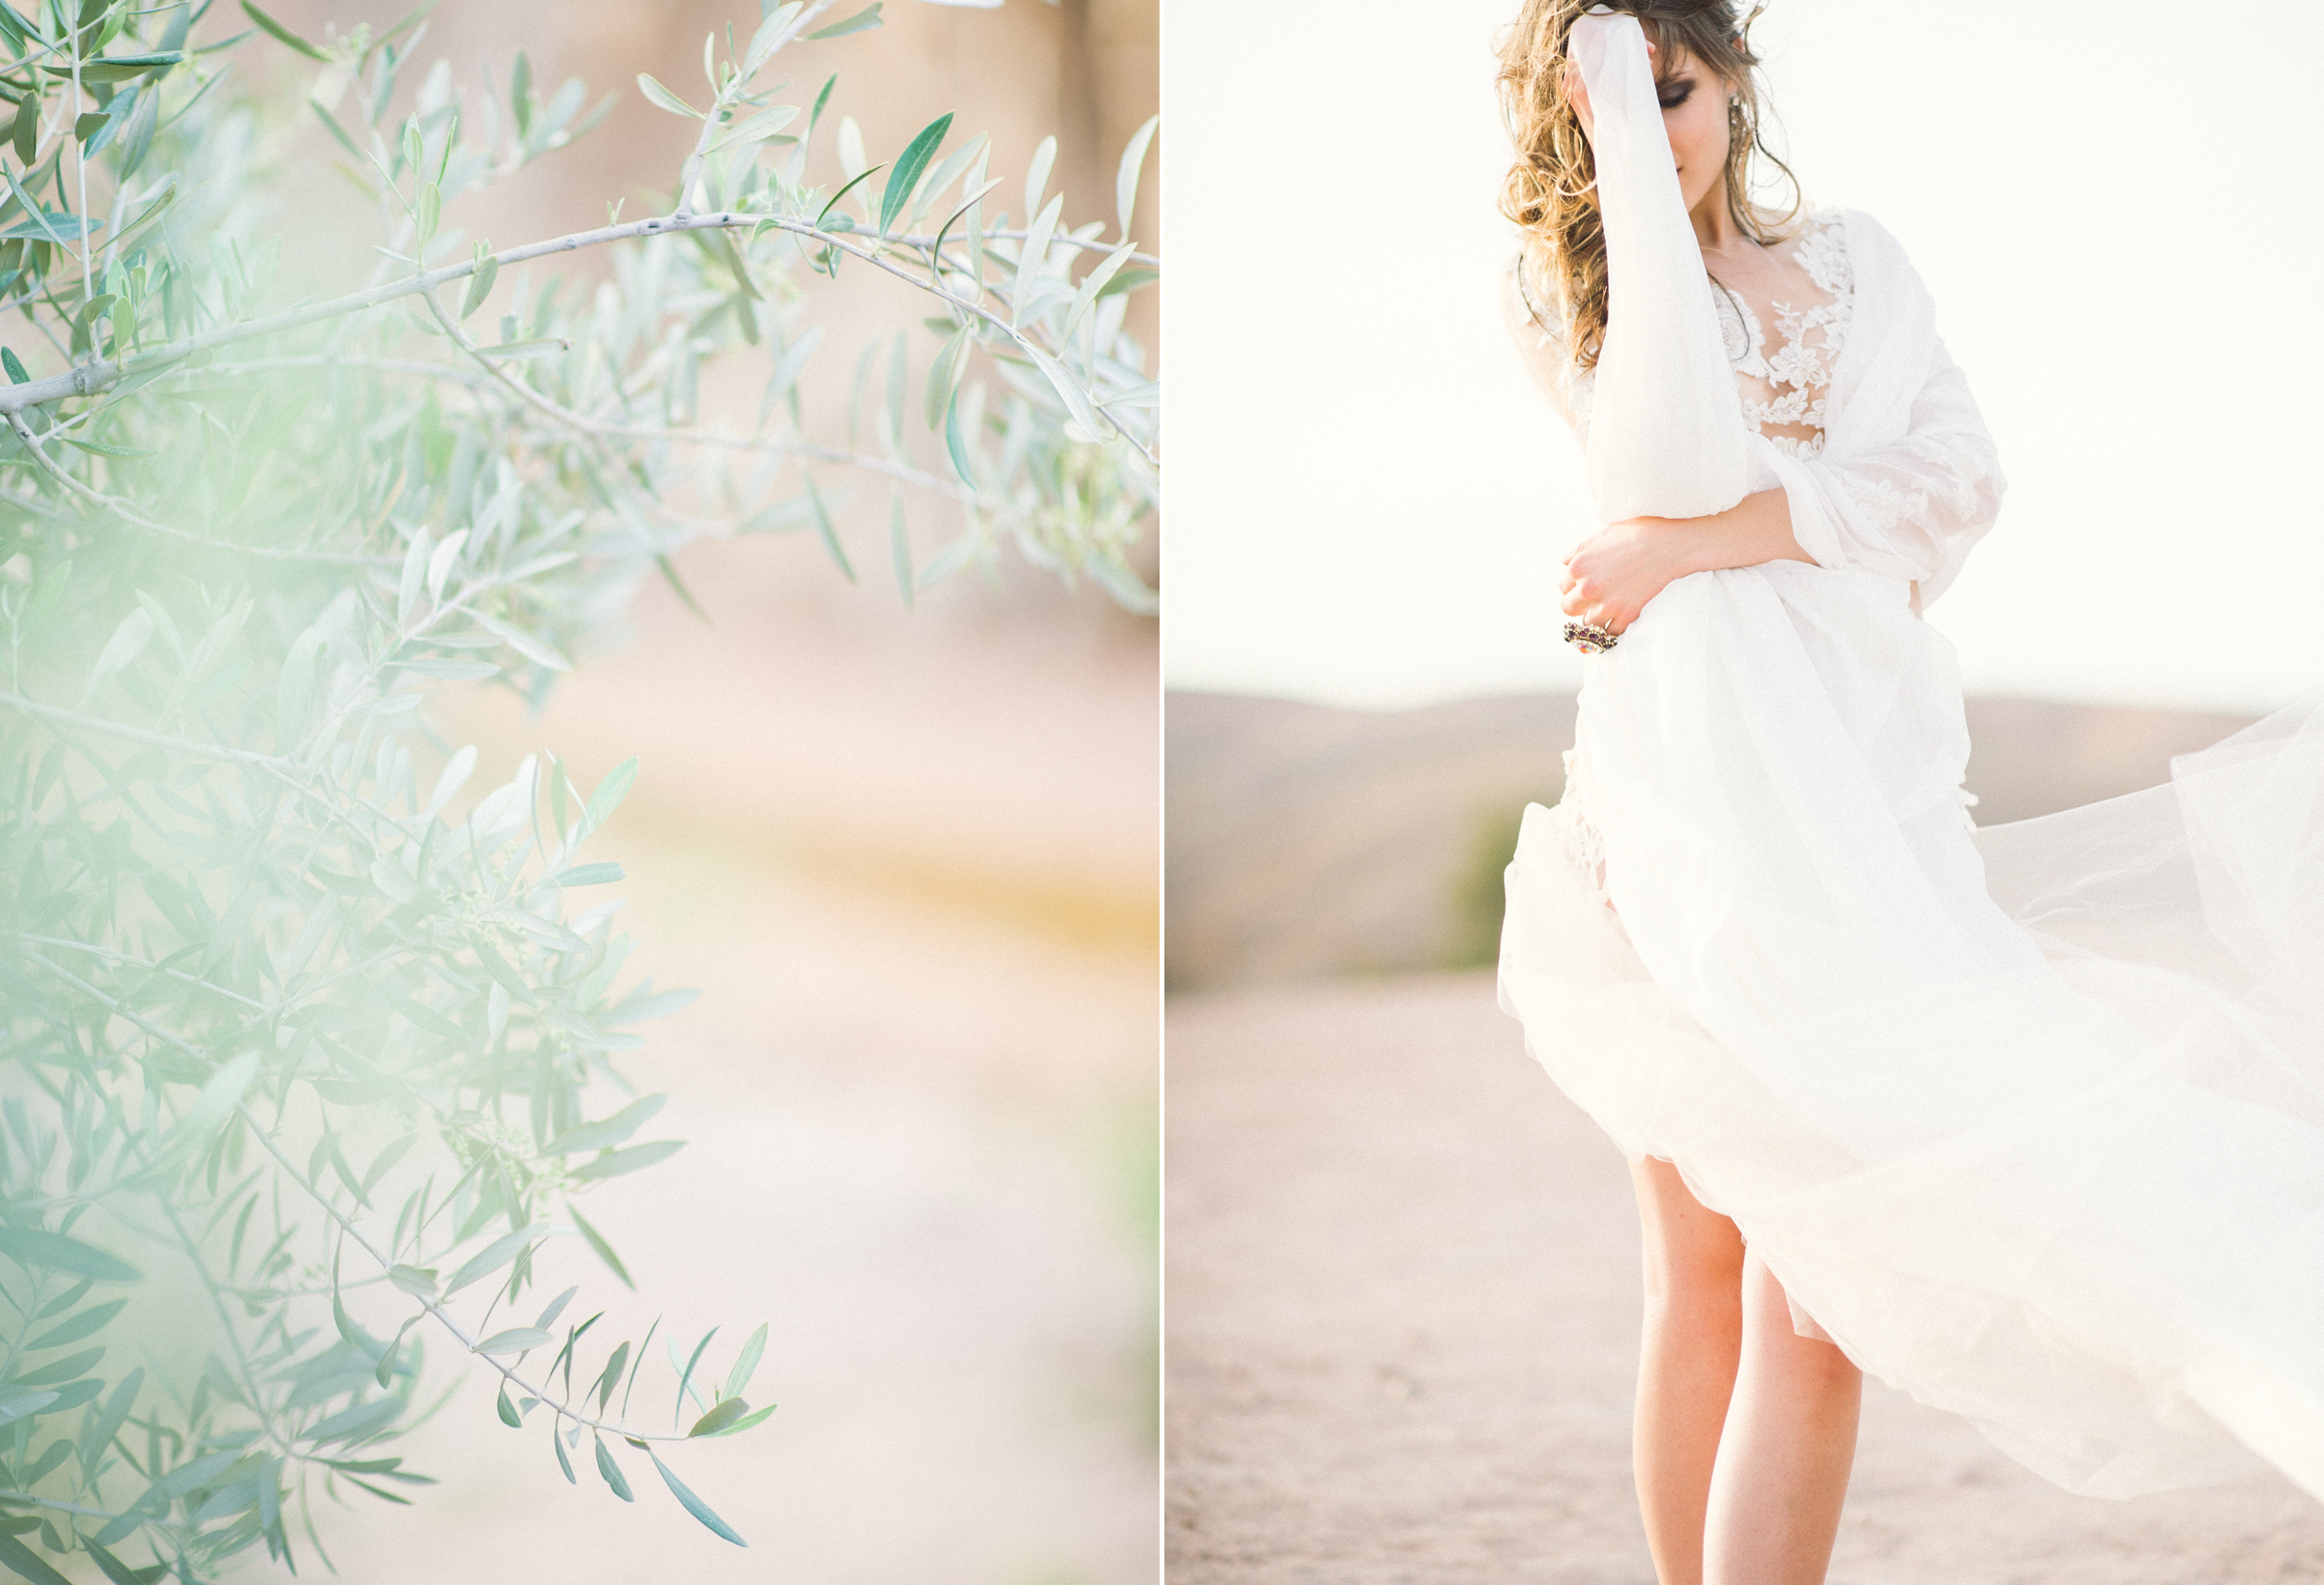 Bohème Moon Photography - Fine Art Weddings in France, Switzerland, Italy, Europe